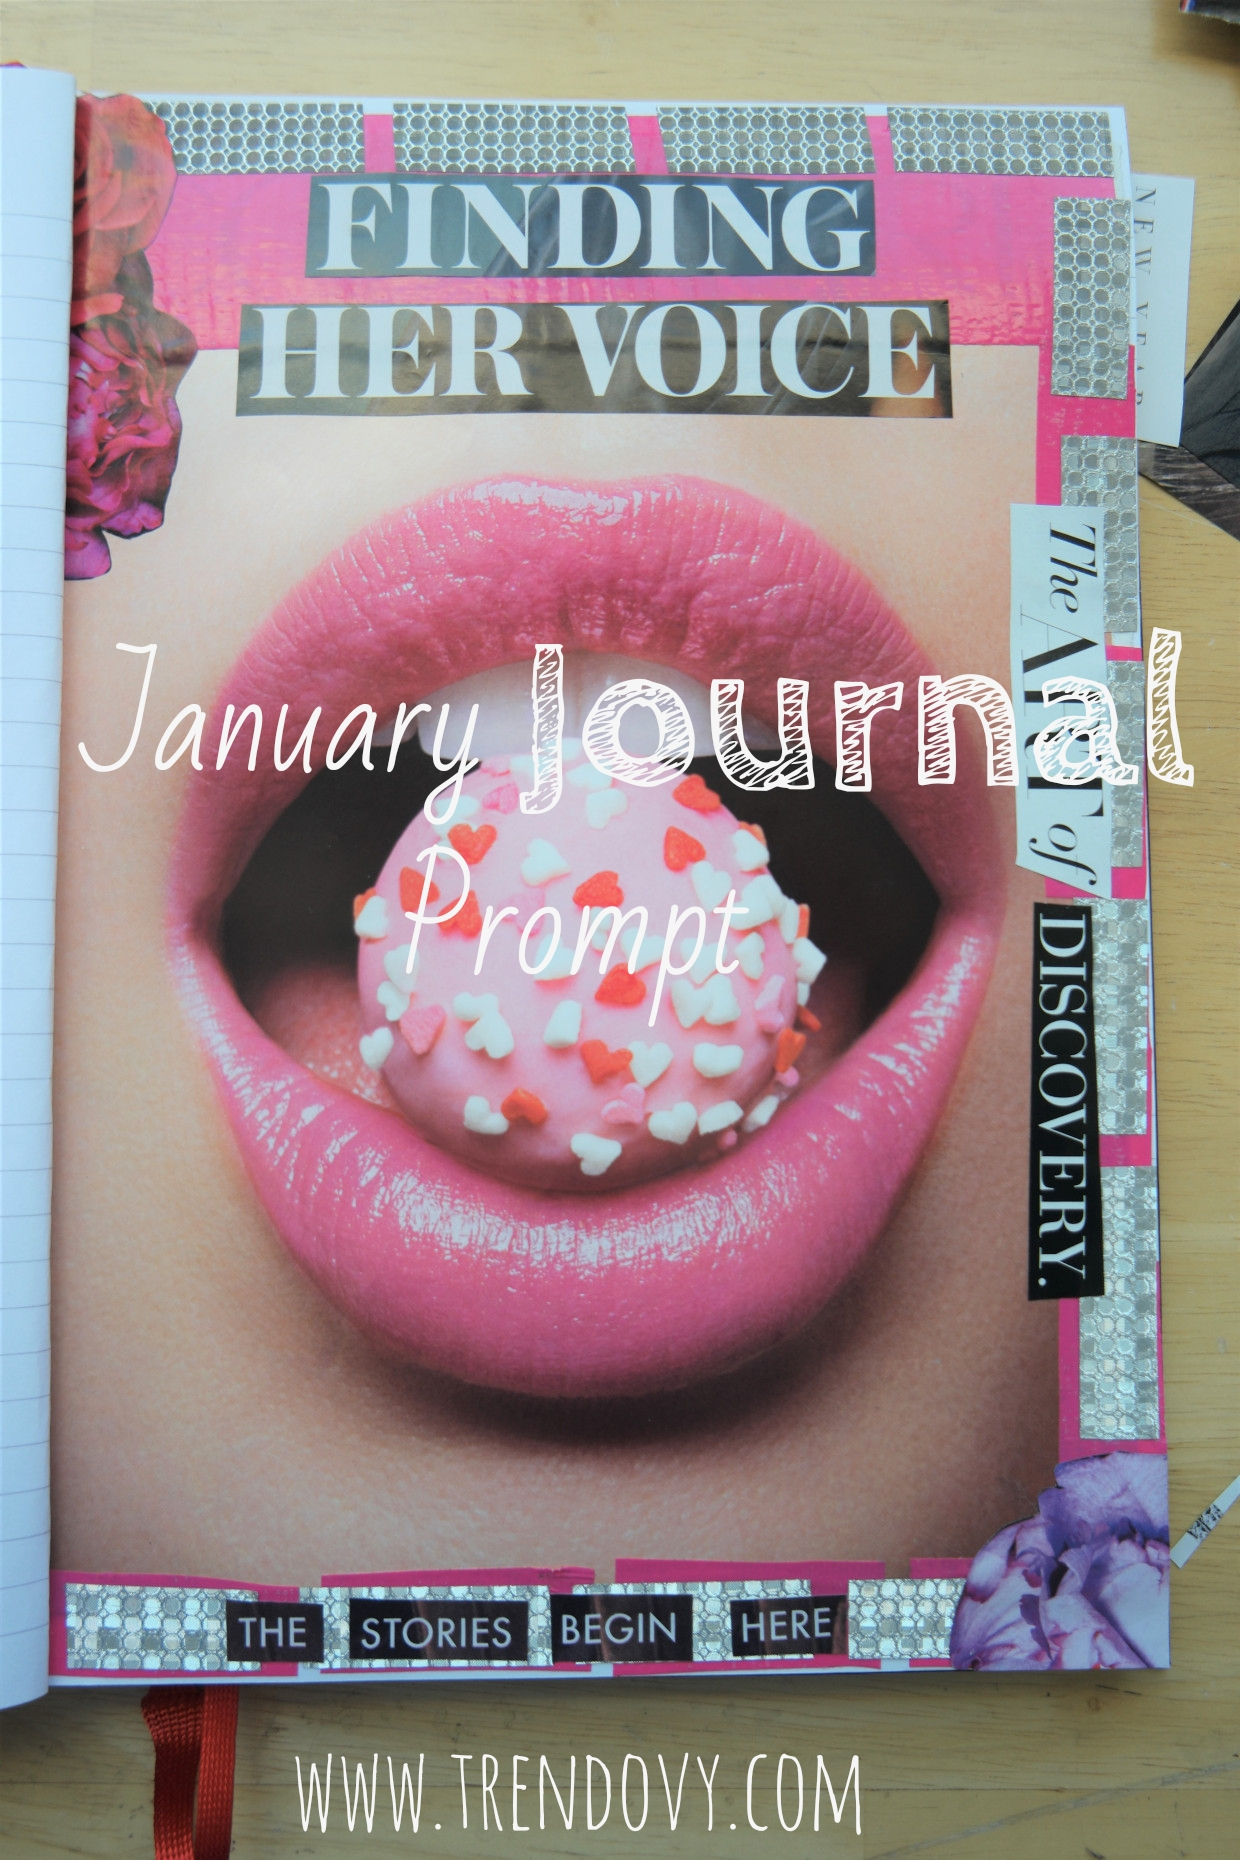 journaling prompts. journal prompts. quotes. collage journaling. magazine scraps. magazine clippings. art journaling. collage journal. gluebook. smashbook. mixed media. kelly kilmer. ephemera. journaling ephemera. vision boards. dream boards.